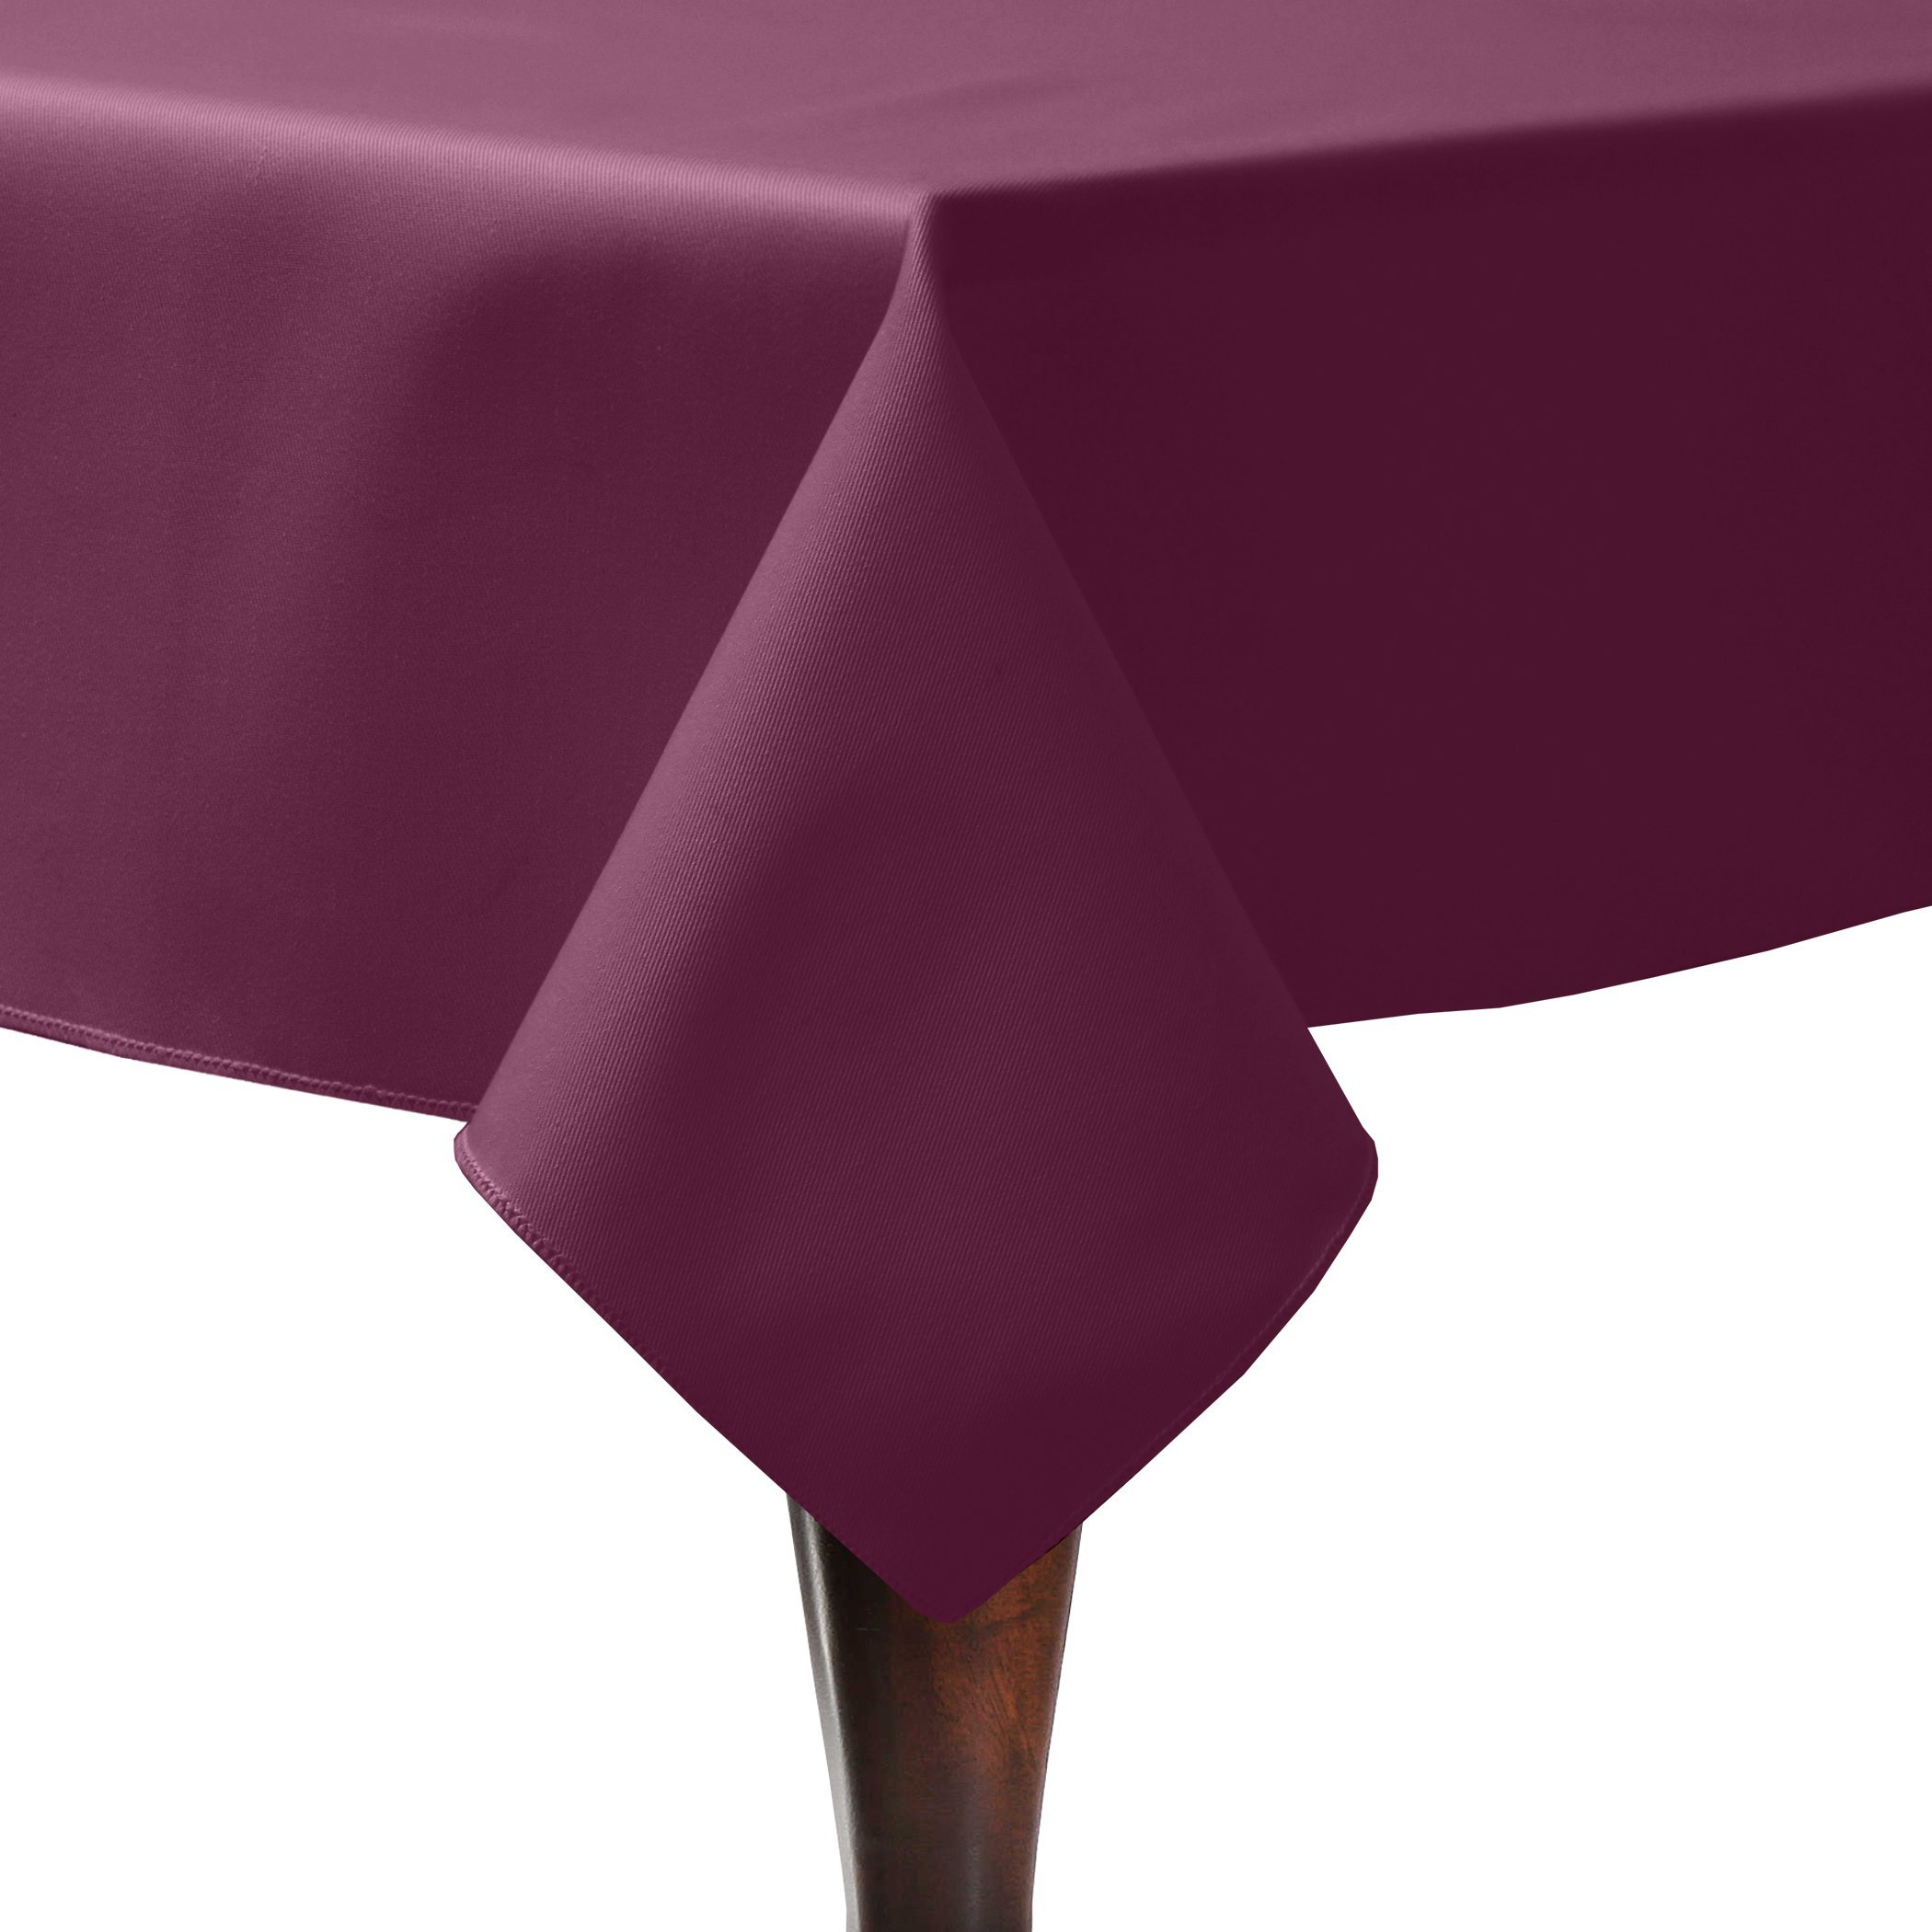 Ultimate Textile (5 Pack) Poly-cotton Twill 60 x 144-Inch Rectangular Tablecloth - for Restaurant and Catering, Hotel or Home Dining use, Burgundy Dark Red